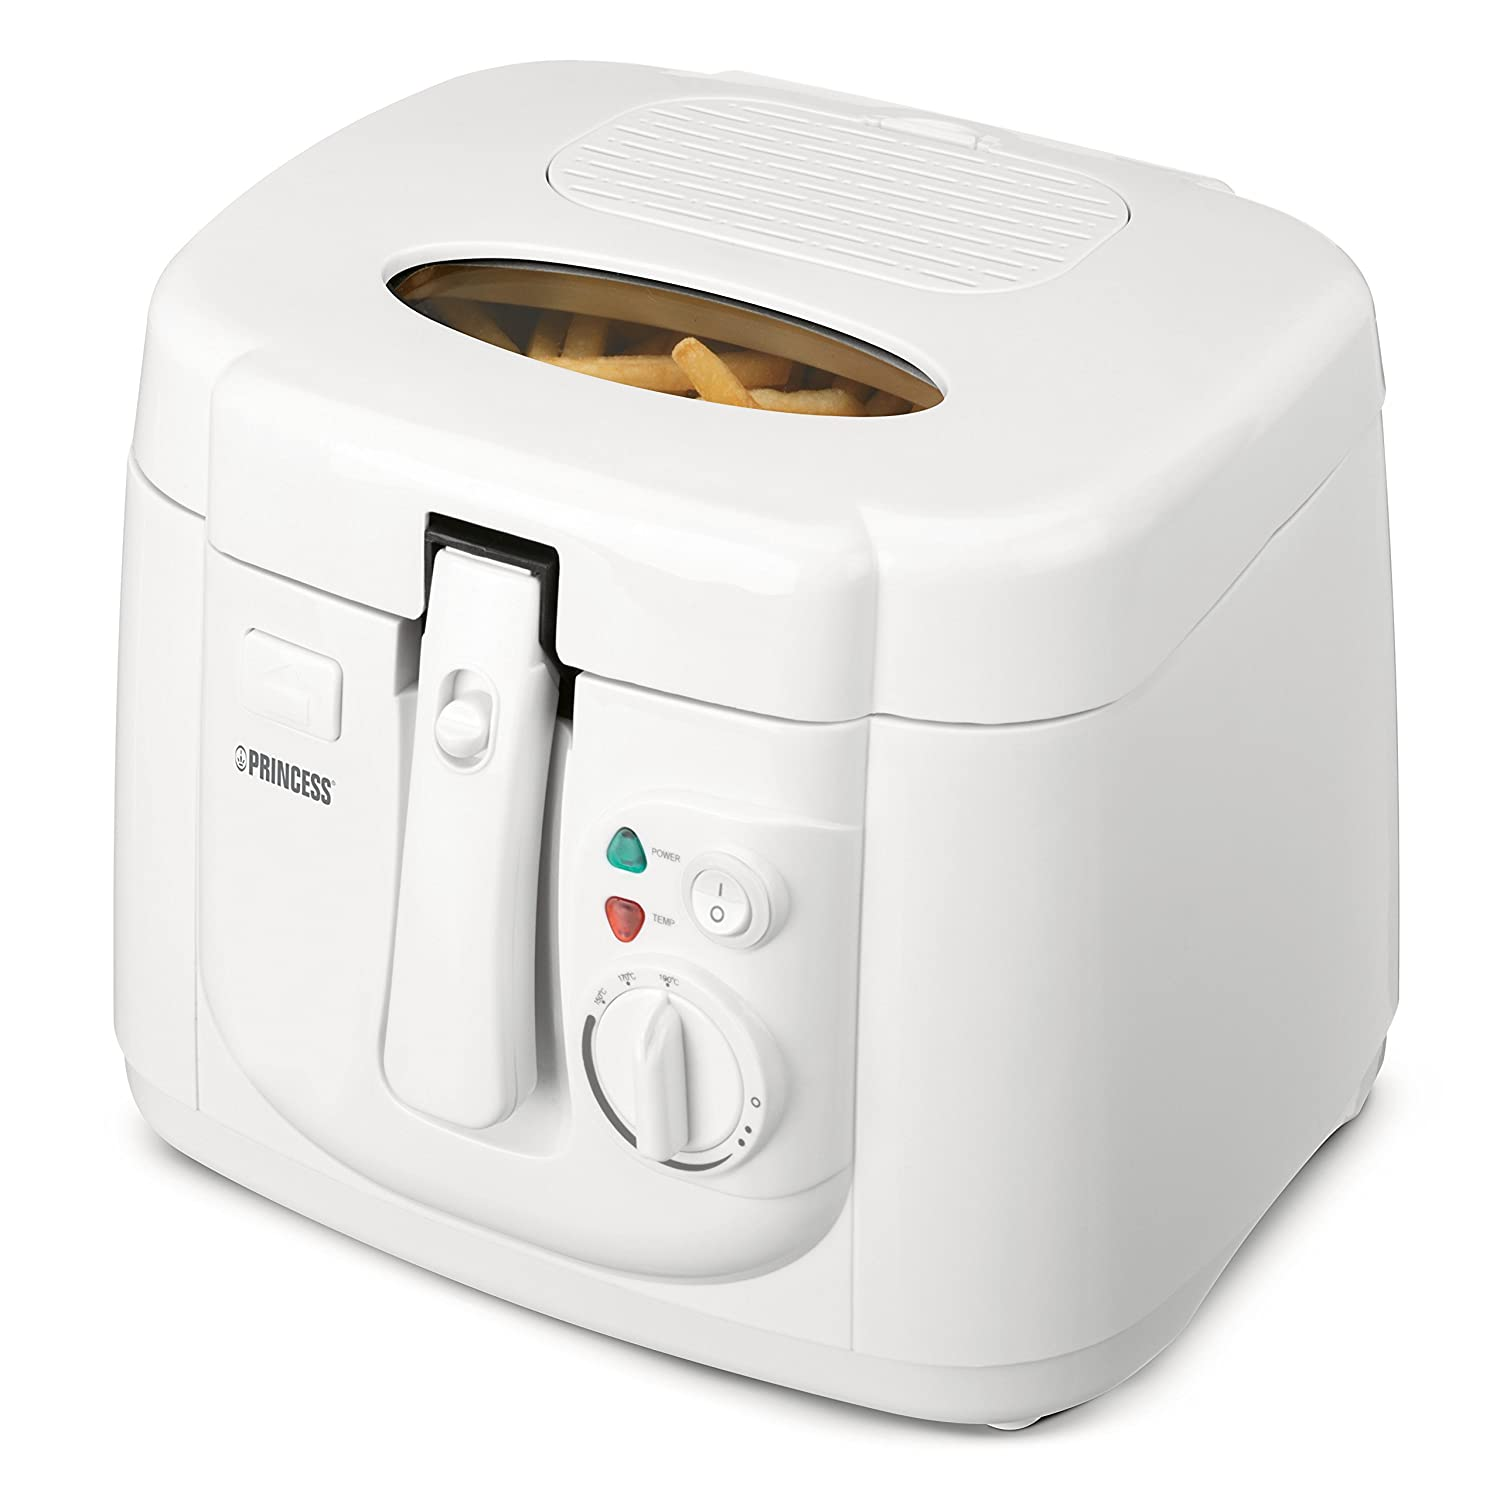 Princess Royal Deep - Freidora, capacidad de 2.5 l, color blanco: Amazon.es: Hogar